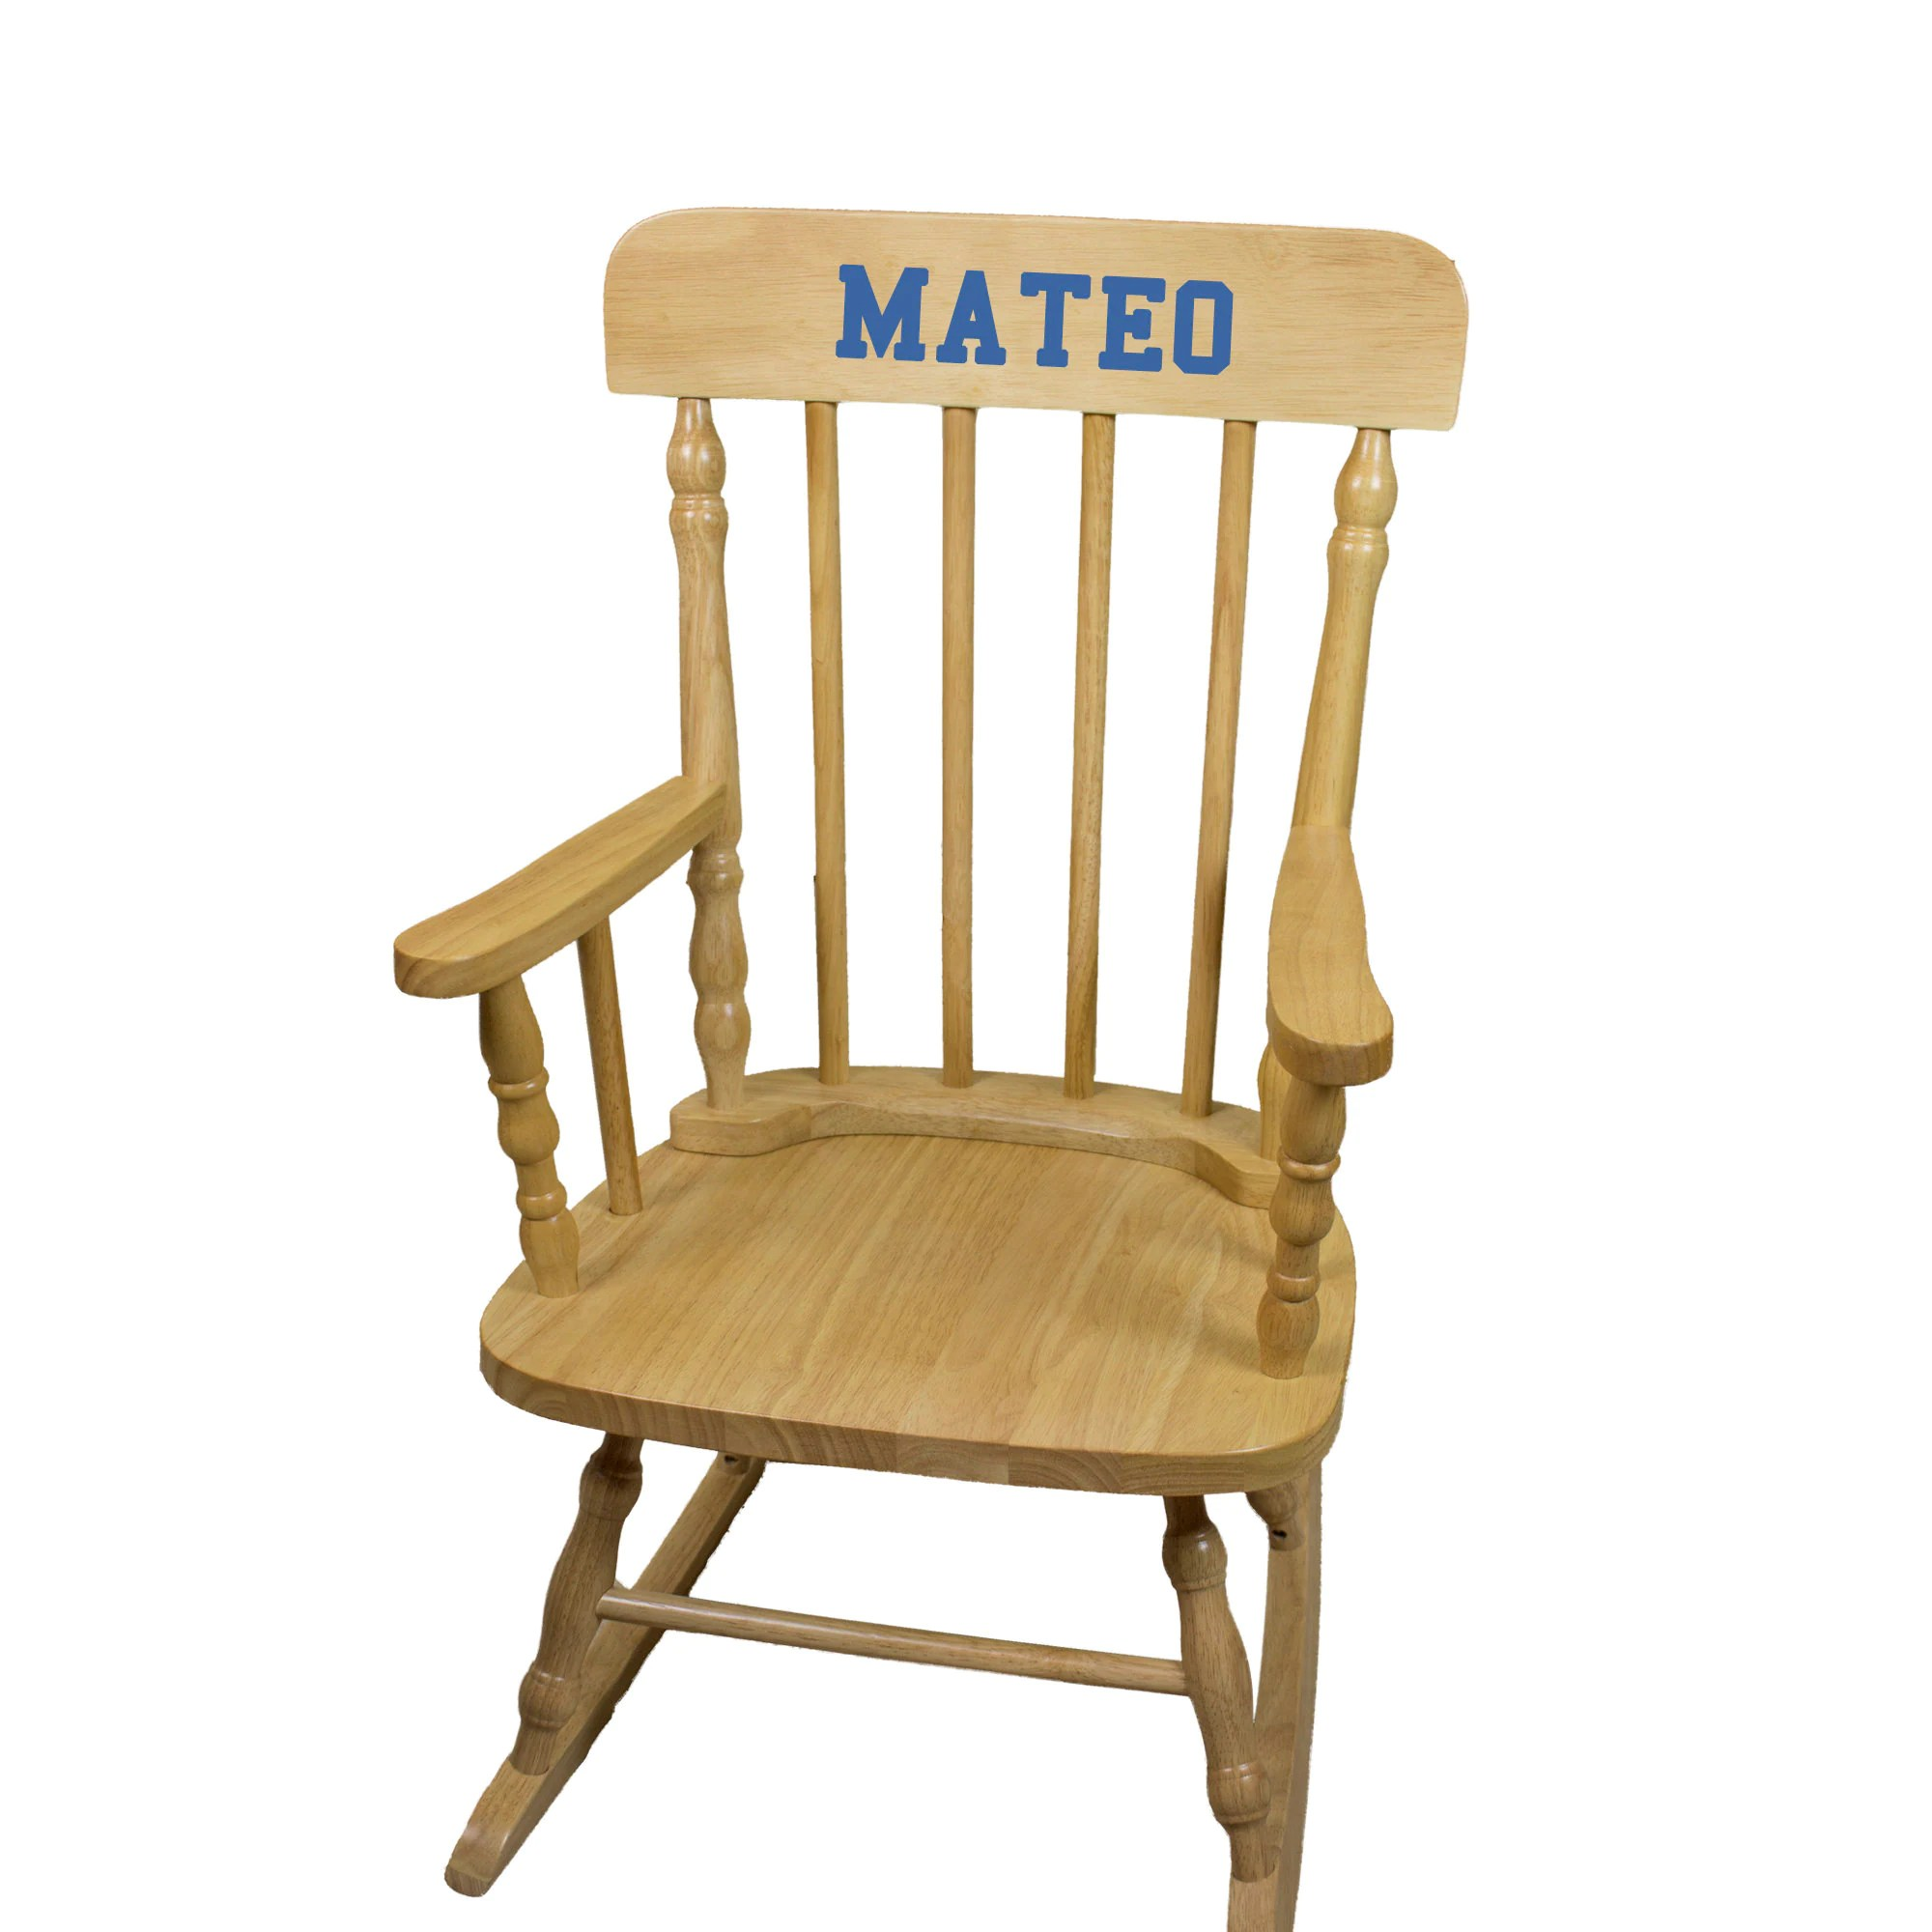 Kids Rocking Chairs Personalized Child S Wood Rocking Chair With Just Name Nursery Furniture Toddler Girl Boy Kids Custom Spindal Rocking Chairs Rocker Spin Nat